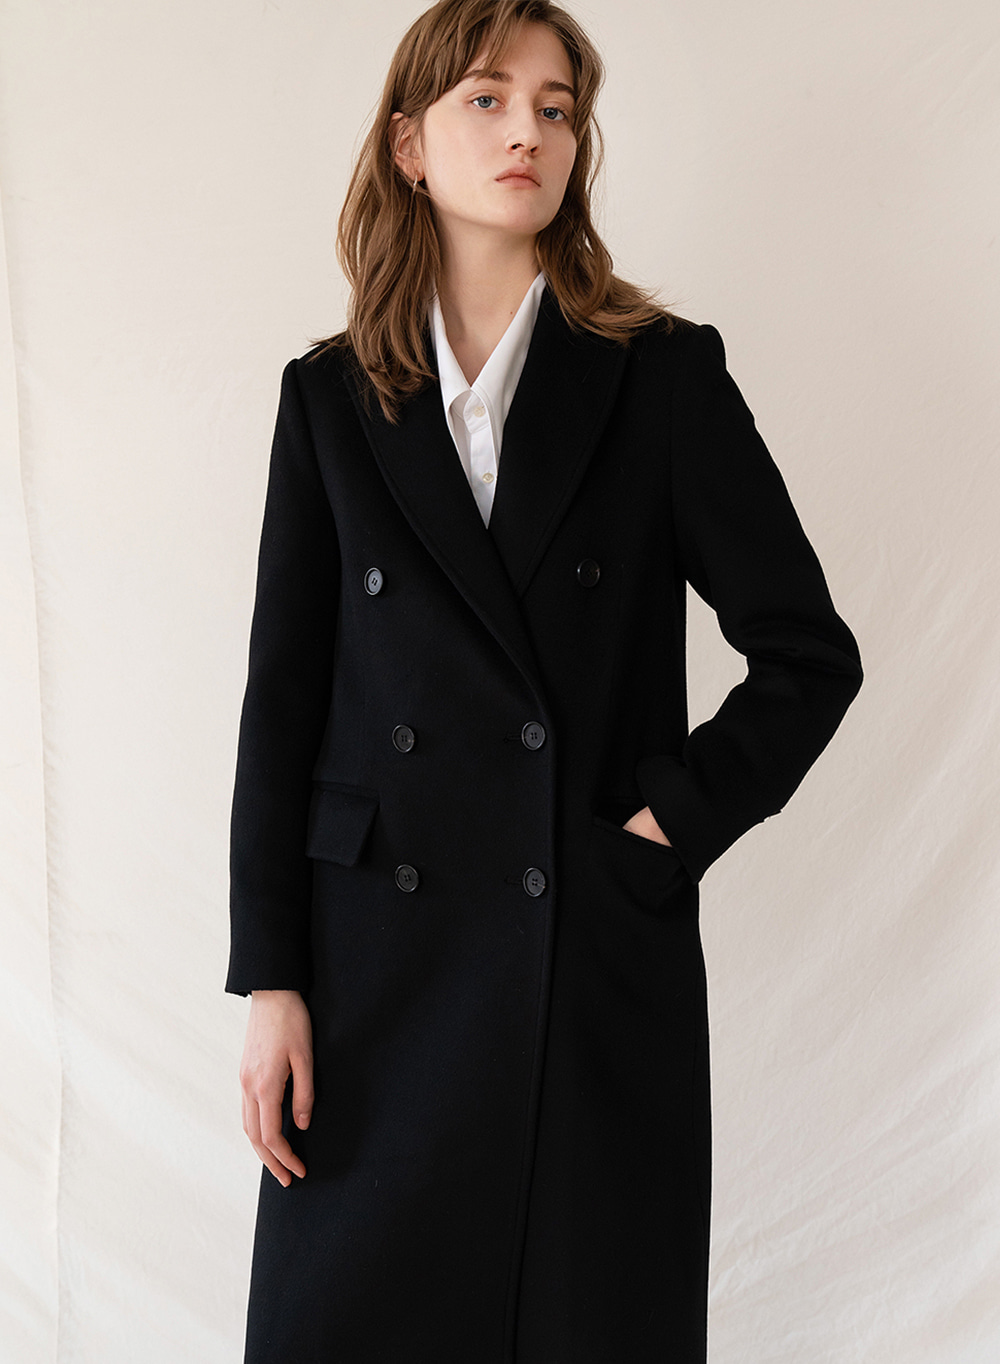 FW19 Cashmere Double Breasted Coat Black